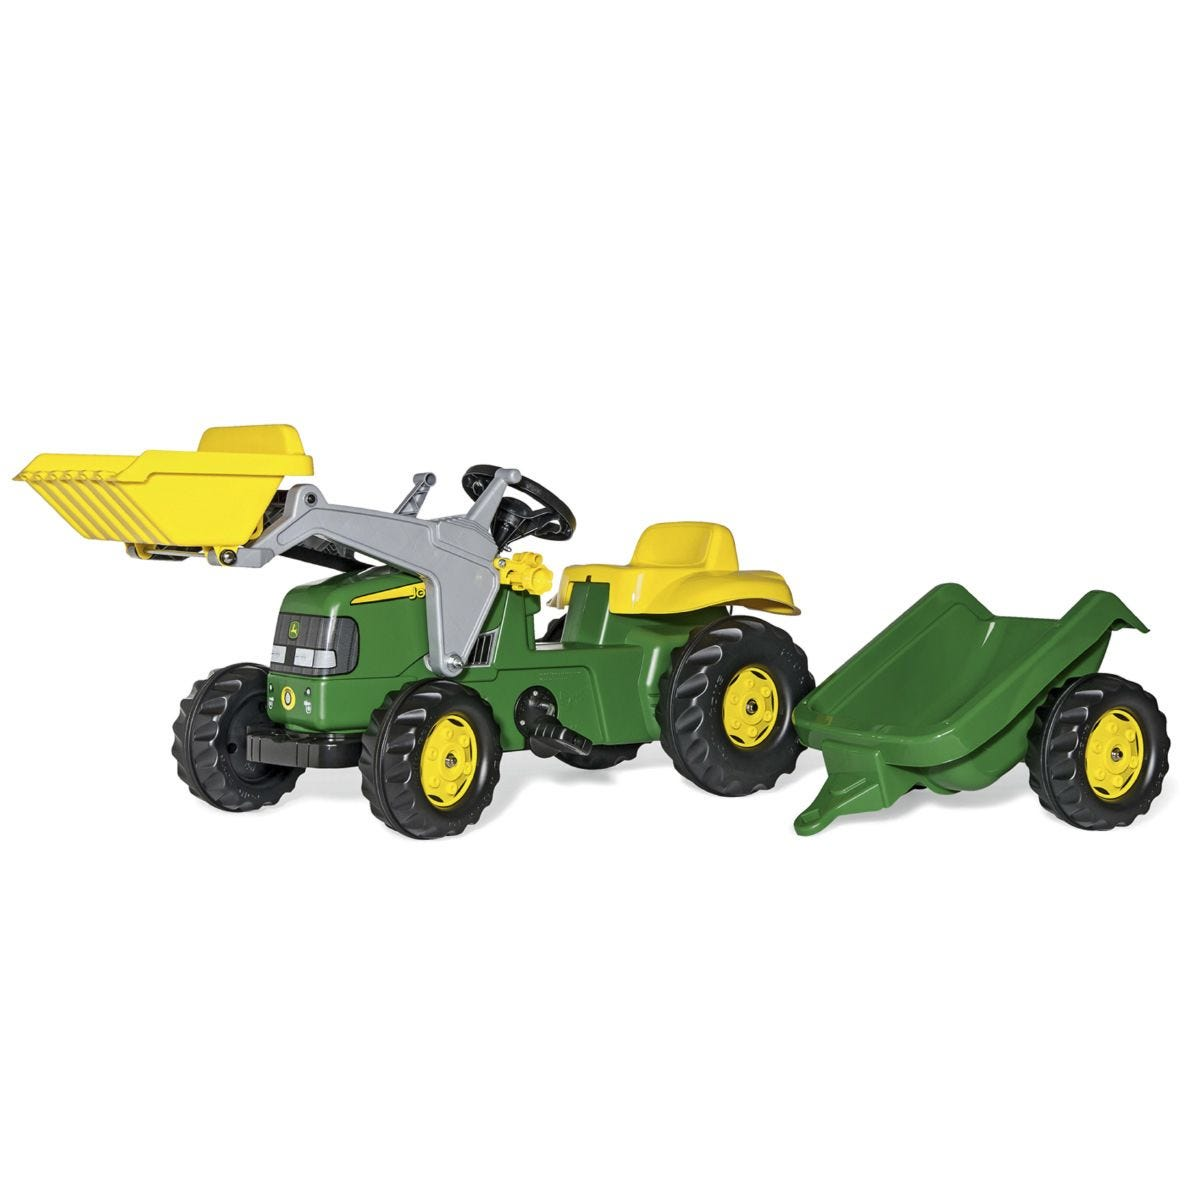 John Deere Kids Tractor with Front Loader and Rear Trailer